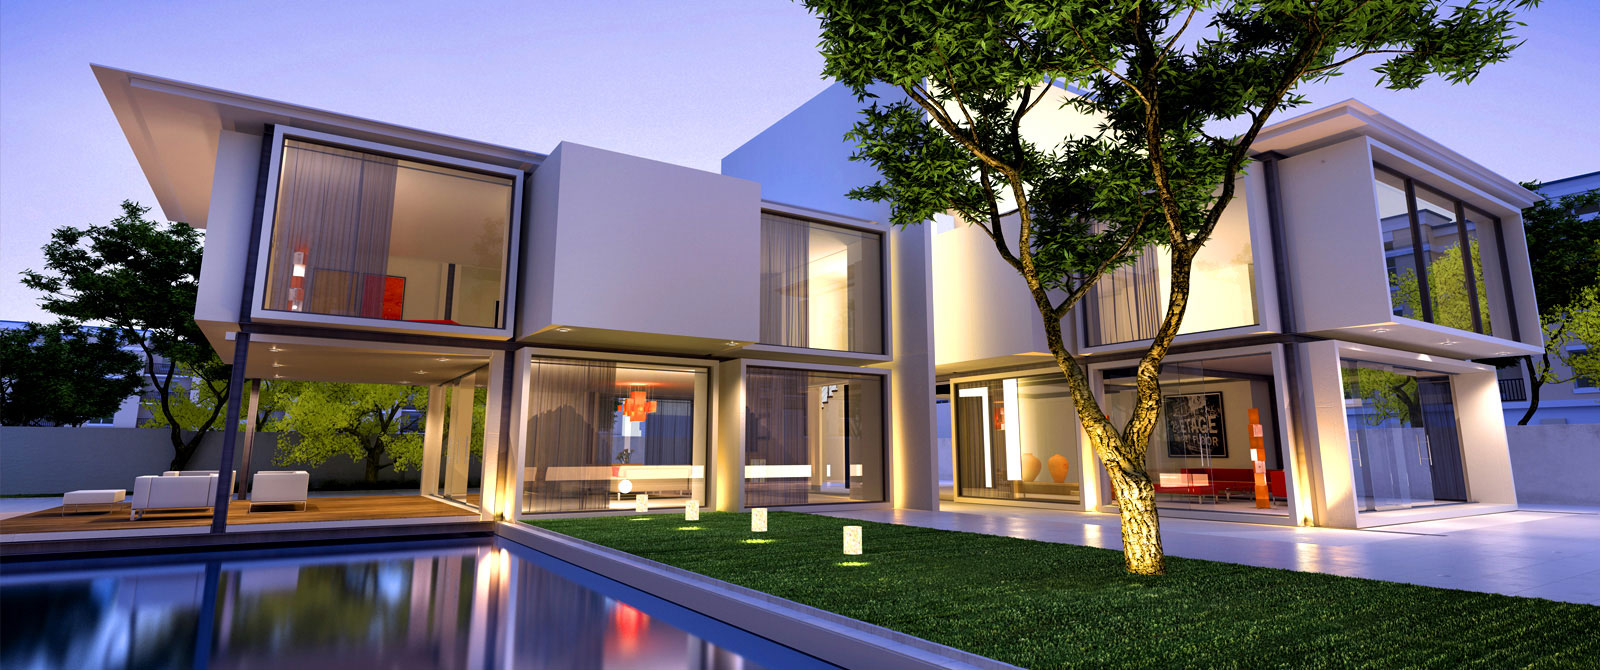 Home Automation at Private Luxury Villa